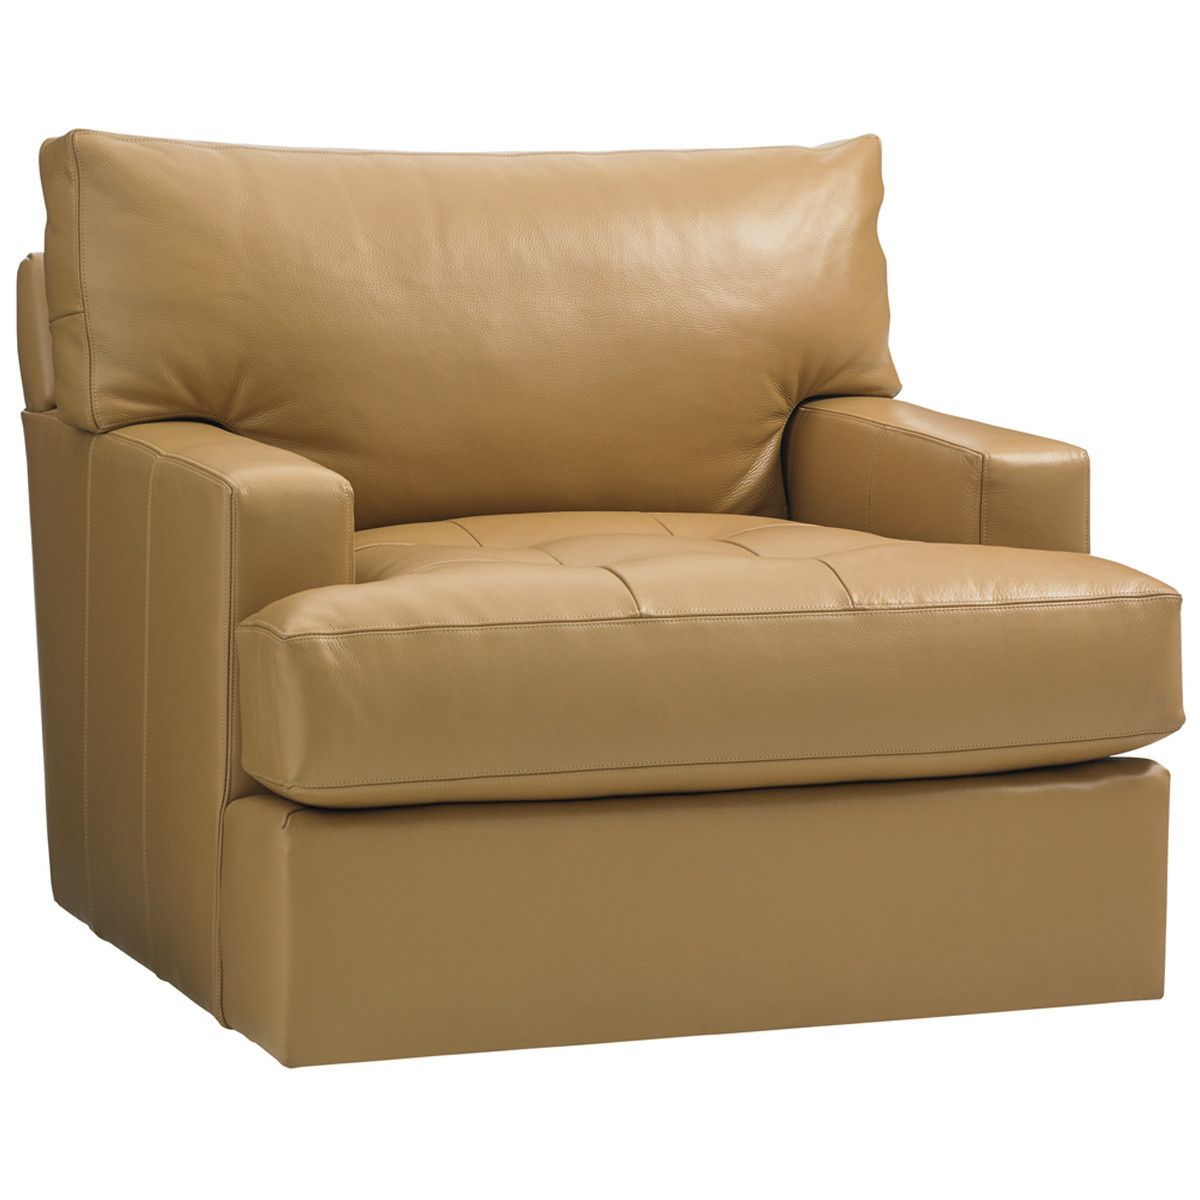 Leather Swivel Chairs For Living Room Lexington Island Fusion Osaka Leather Swivel Chair Products